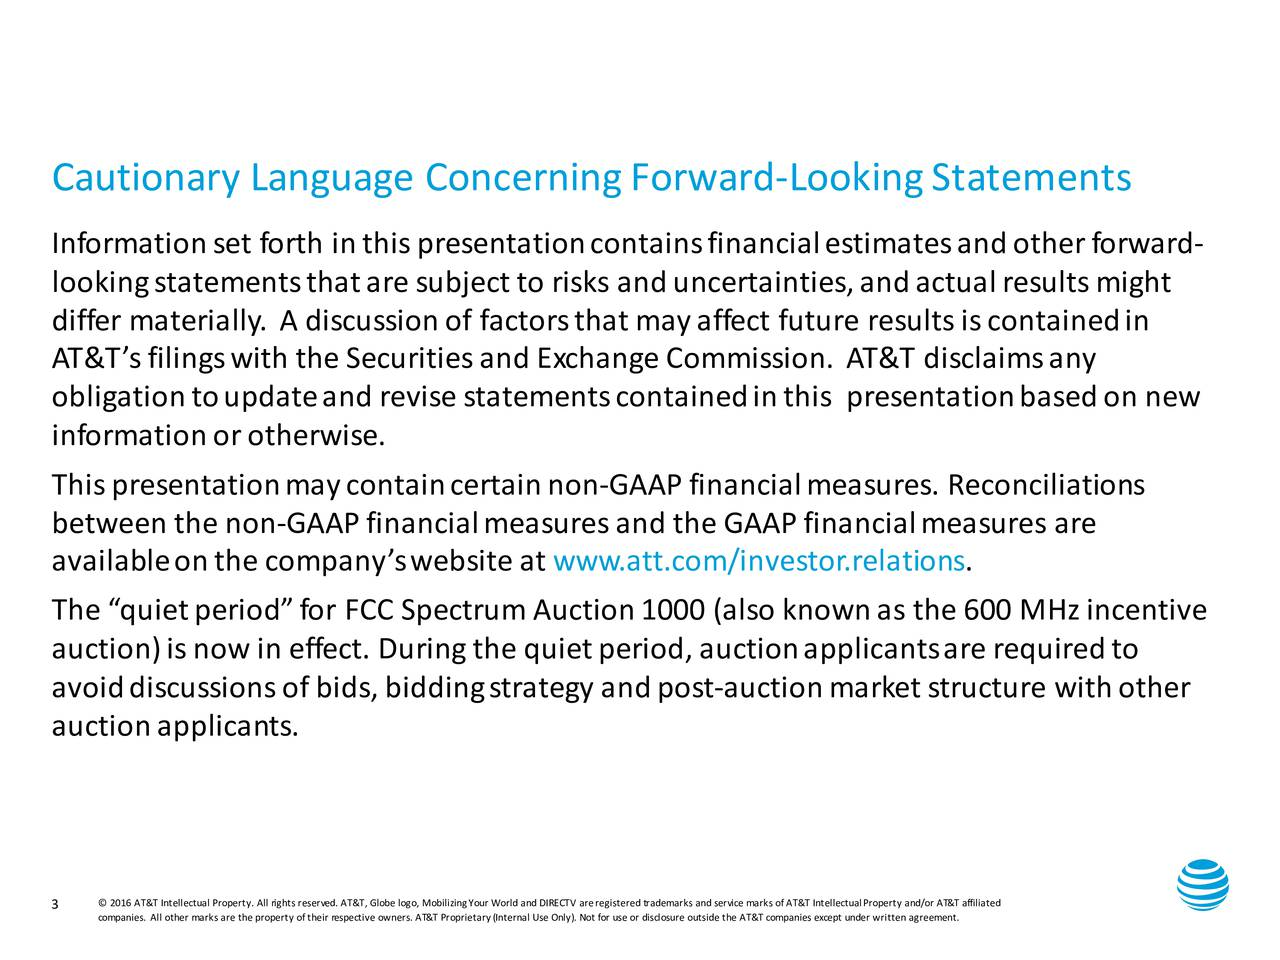 Information set forth in this presentationcontainsfinancialestimatesand other forward - lookingstatementsthat are subject to risks and uncertainties, and actual results might differmaterially. Adiscussionoffactorsthatmayaffect future resultsiscontainedin AT&Tsfilingswith the Securitiesand Exchange Commission. AT&T disclaimsany obligationtoupdateand revise statementscontainedinthis presentationbasedon new information or otherwise. This presentation may contain certain non-GAAP financial measures. Reconciliations between the non-GAAP financialmeasures and the GAAP financialmeasures are available on the companyswebsite at www.att.com/investor.relations. The quiet period for FCC Spectrum Auction1000 (also knownas the 600 MHzincentive auction)isnow in effect. Duringthe quietperiod, auctionapplicantsare requiredto avoiddiscussionsofbids, bidding strategy and post-auction market structure with other auction applicants. 3  2016 AT&T Intellectual Property. All rightsresademarksandservice marksofAT&T IntellectualProperty and/or AT&T affiliated companies. All other marks are the property oftheir respective owners. AT&T Proprietary(Internal Use Only). Not for use orcdloissure outside the AT&T companies except under written agreement.